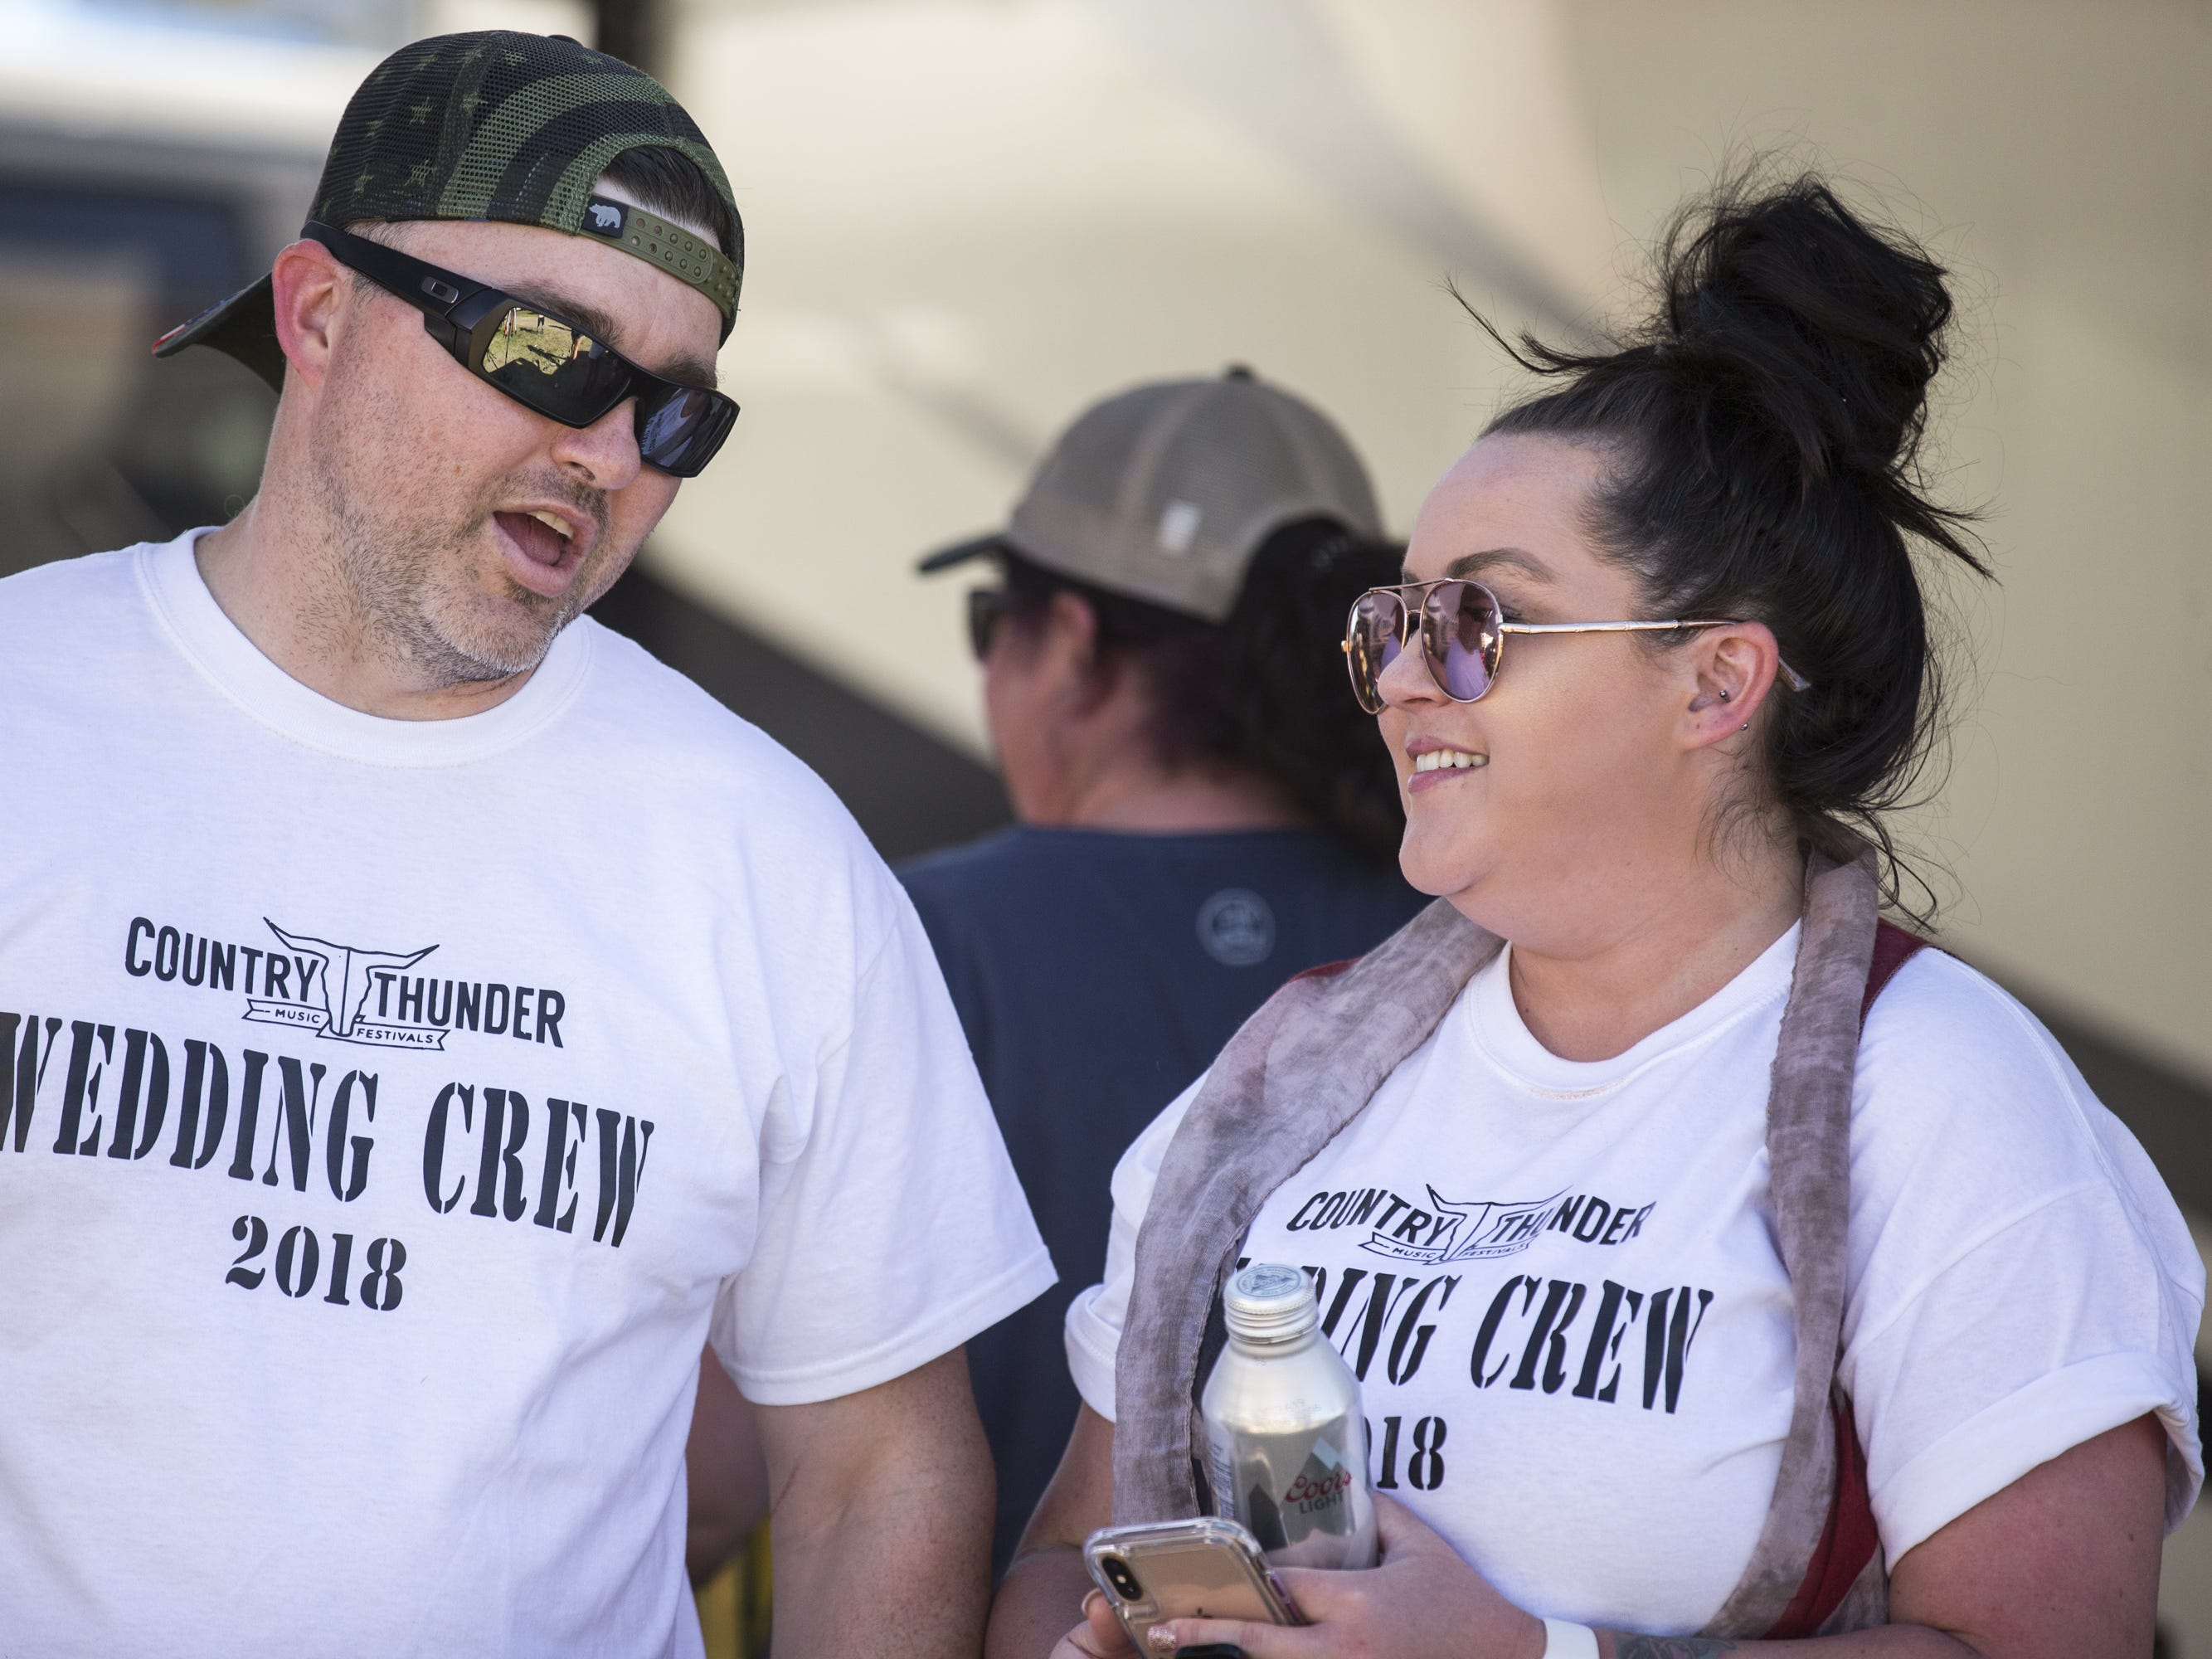 Michael and Mandy Bissey talk at a campsite on Saturday, April 13, 2019, during Day 3 of Country Thunder Arizona in Florence, Ariz. The couple got married at Country Thunder last year.